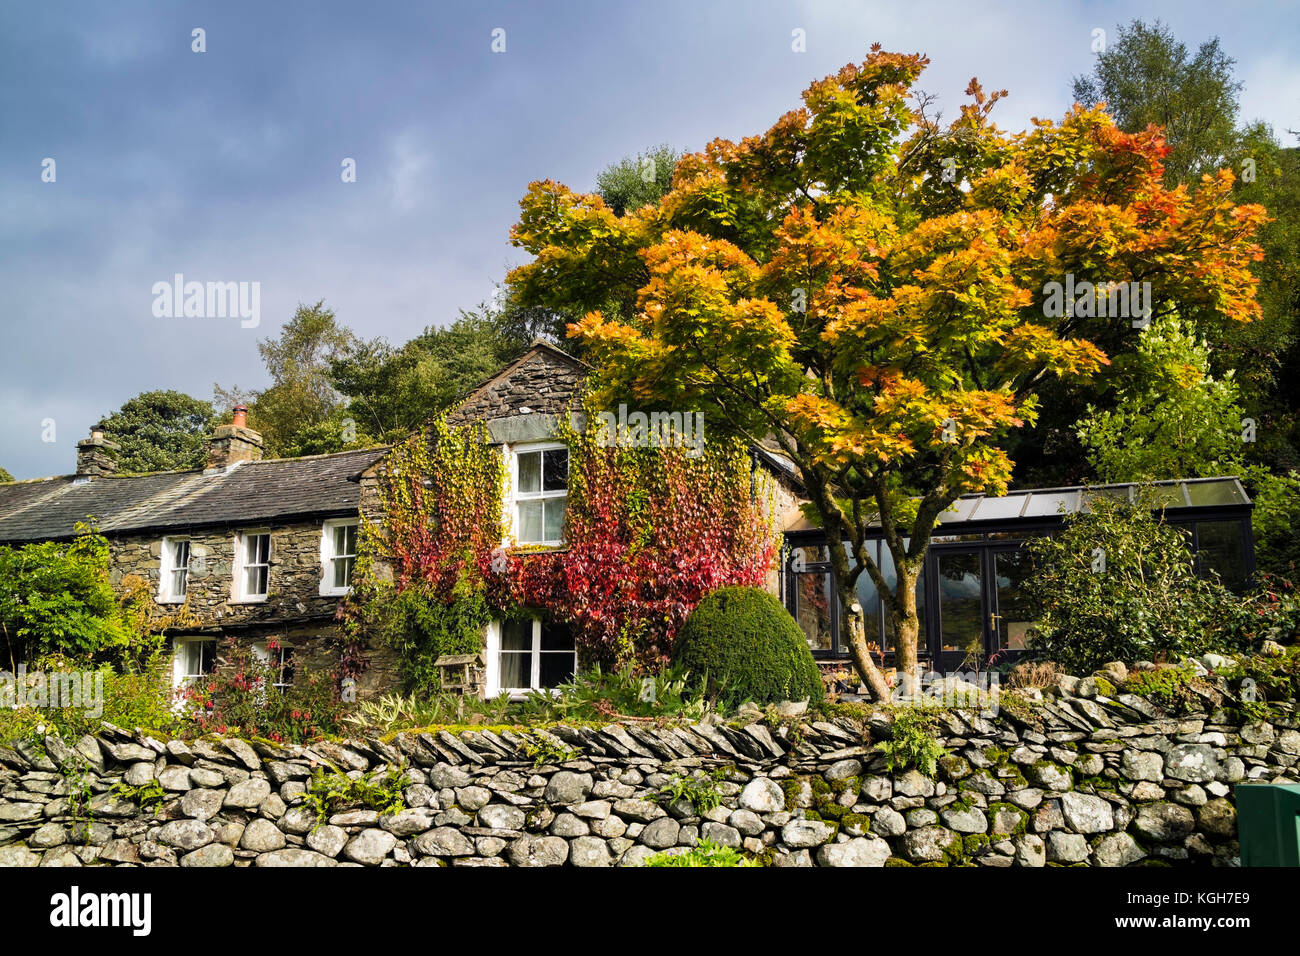 Autumn Colours in the Village of Hartsop, Patterdale, Lake District, Cumbria UK - Stock Image